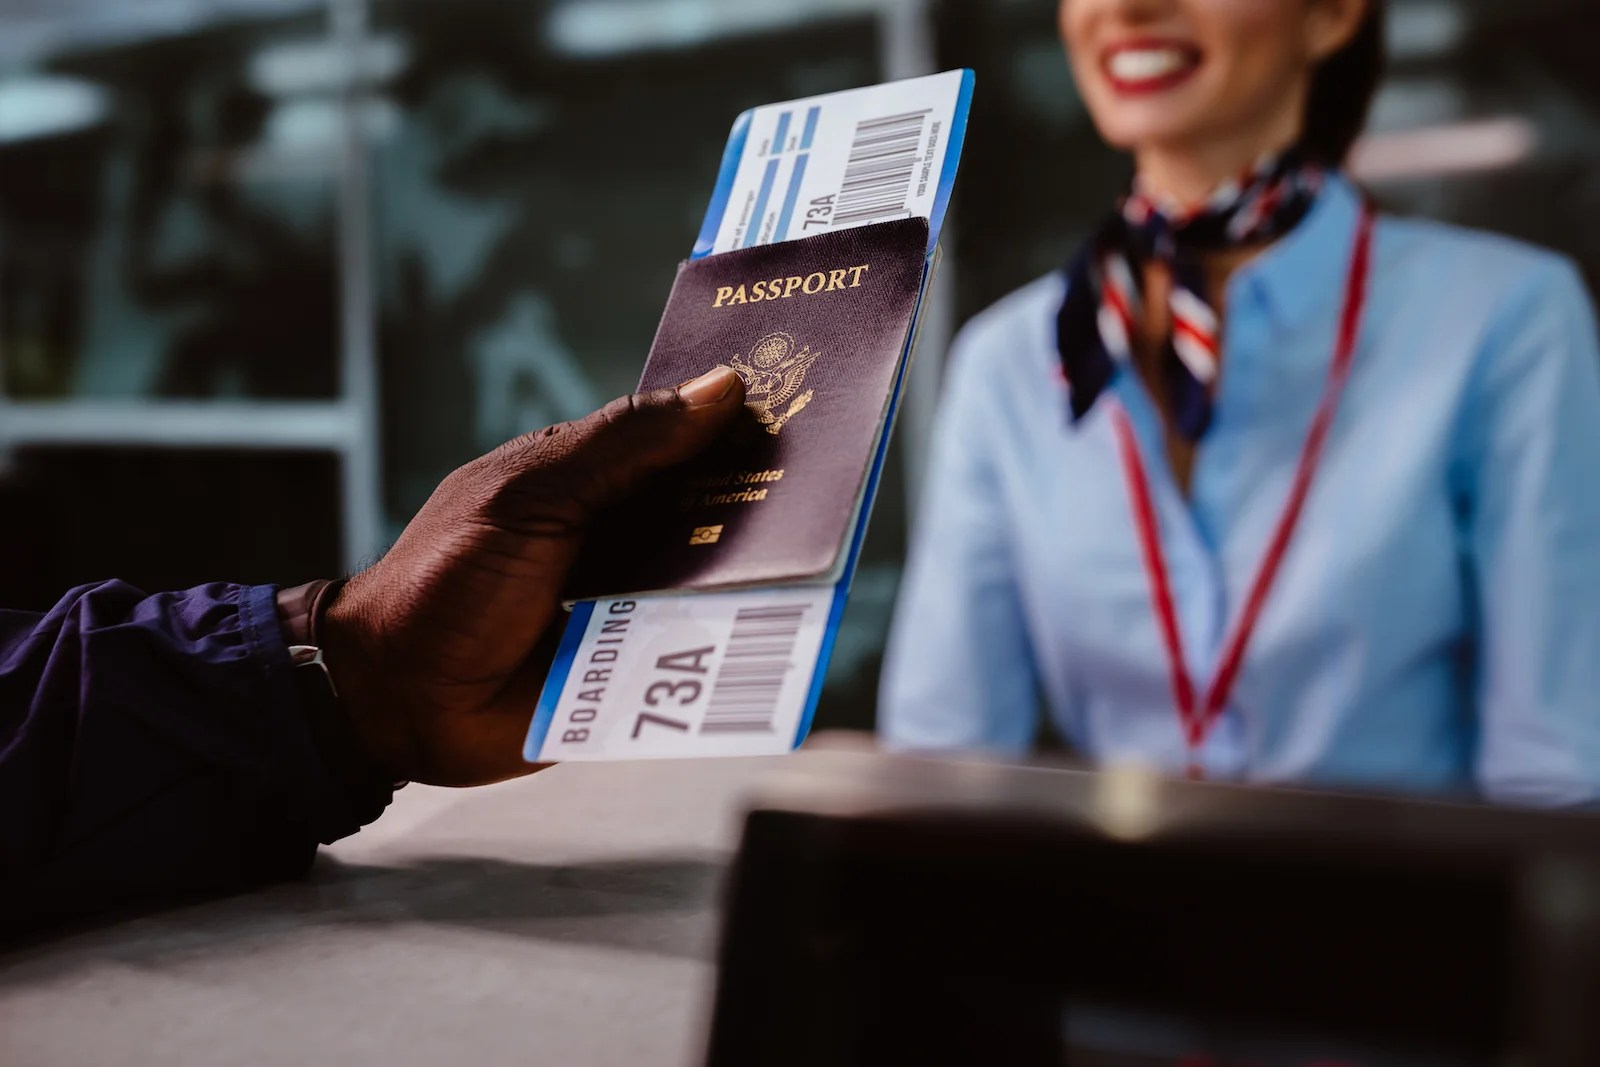 Airline credit cards that earn 3 or more miles per dollar on airfare